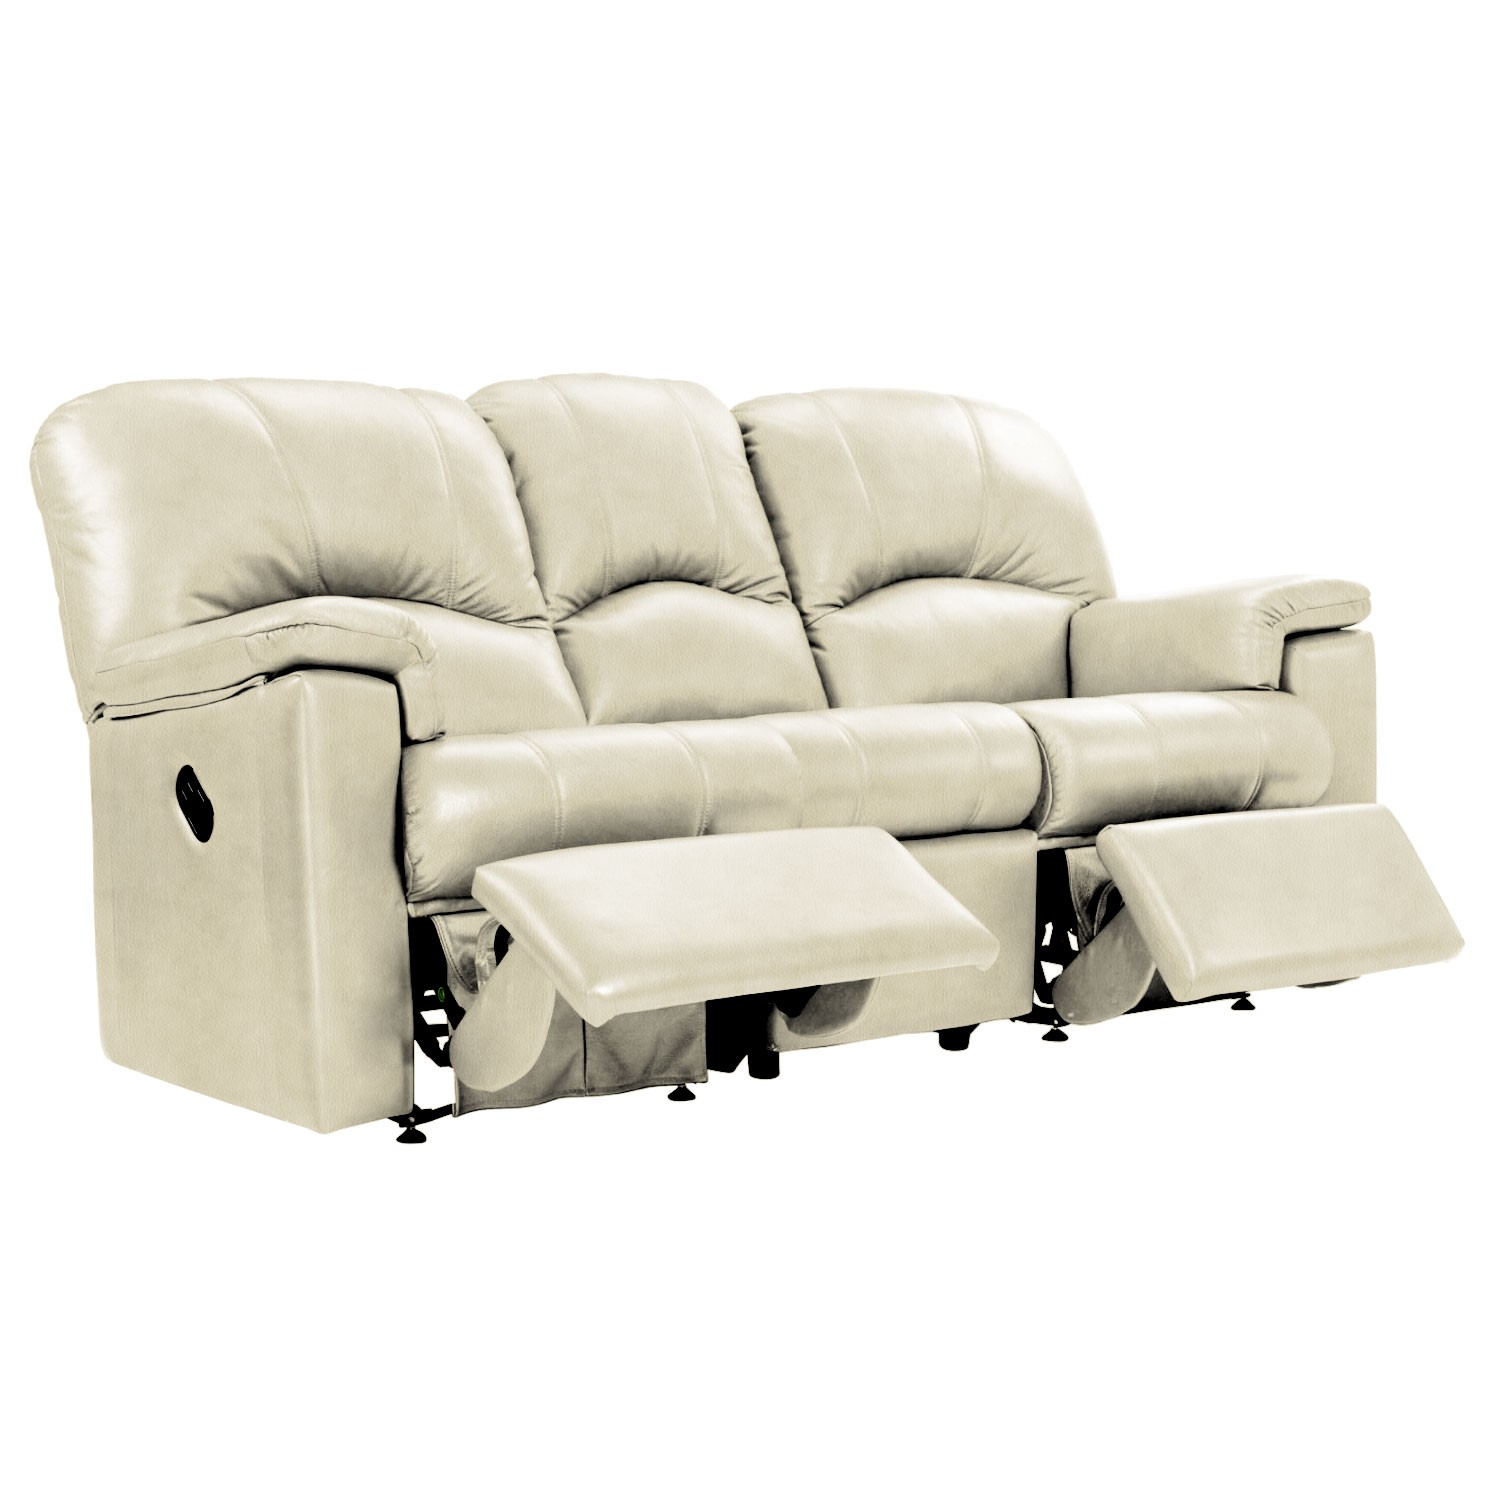 three seater recliner sofa marks and spencer abbey leather reviews g plan chloe double